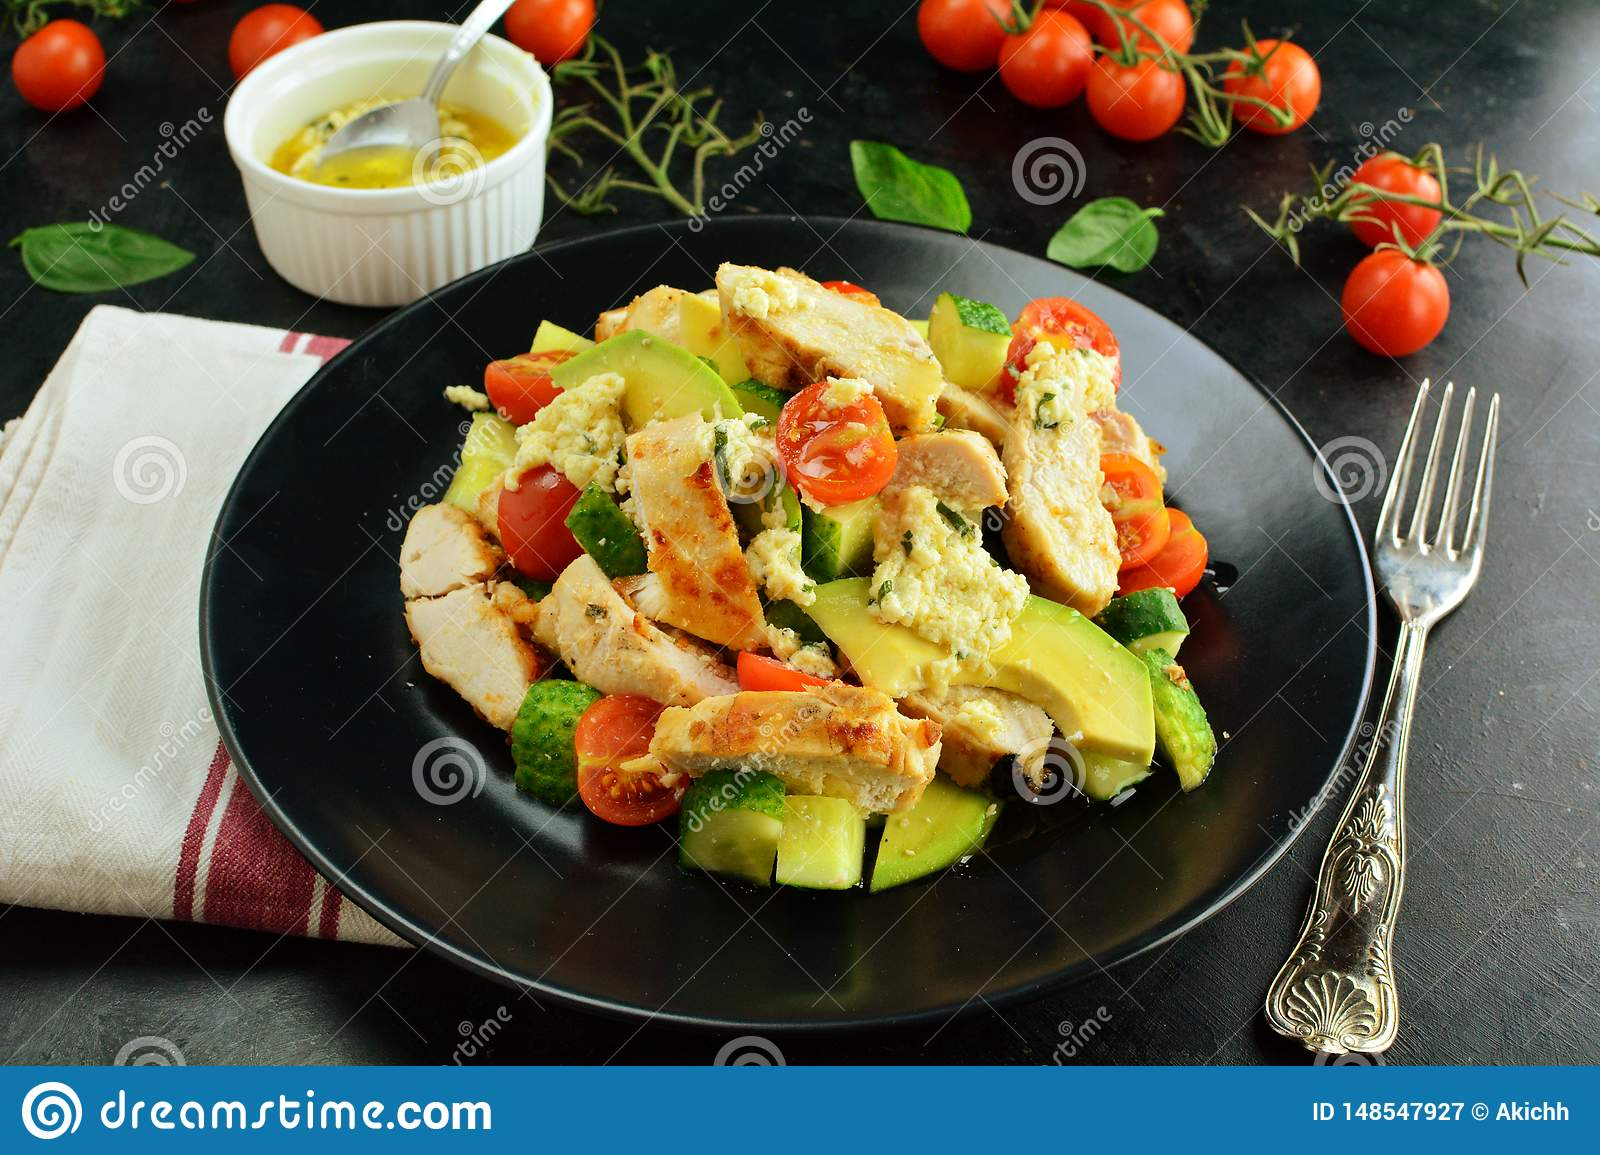 Grilled Chicken Breast And Avocado Salad With Dijon And Lemon Dressing Healthy Keto Diet Meal Stock Image Image Of Copy Fire 148547927